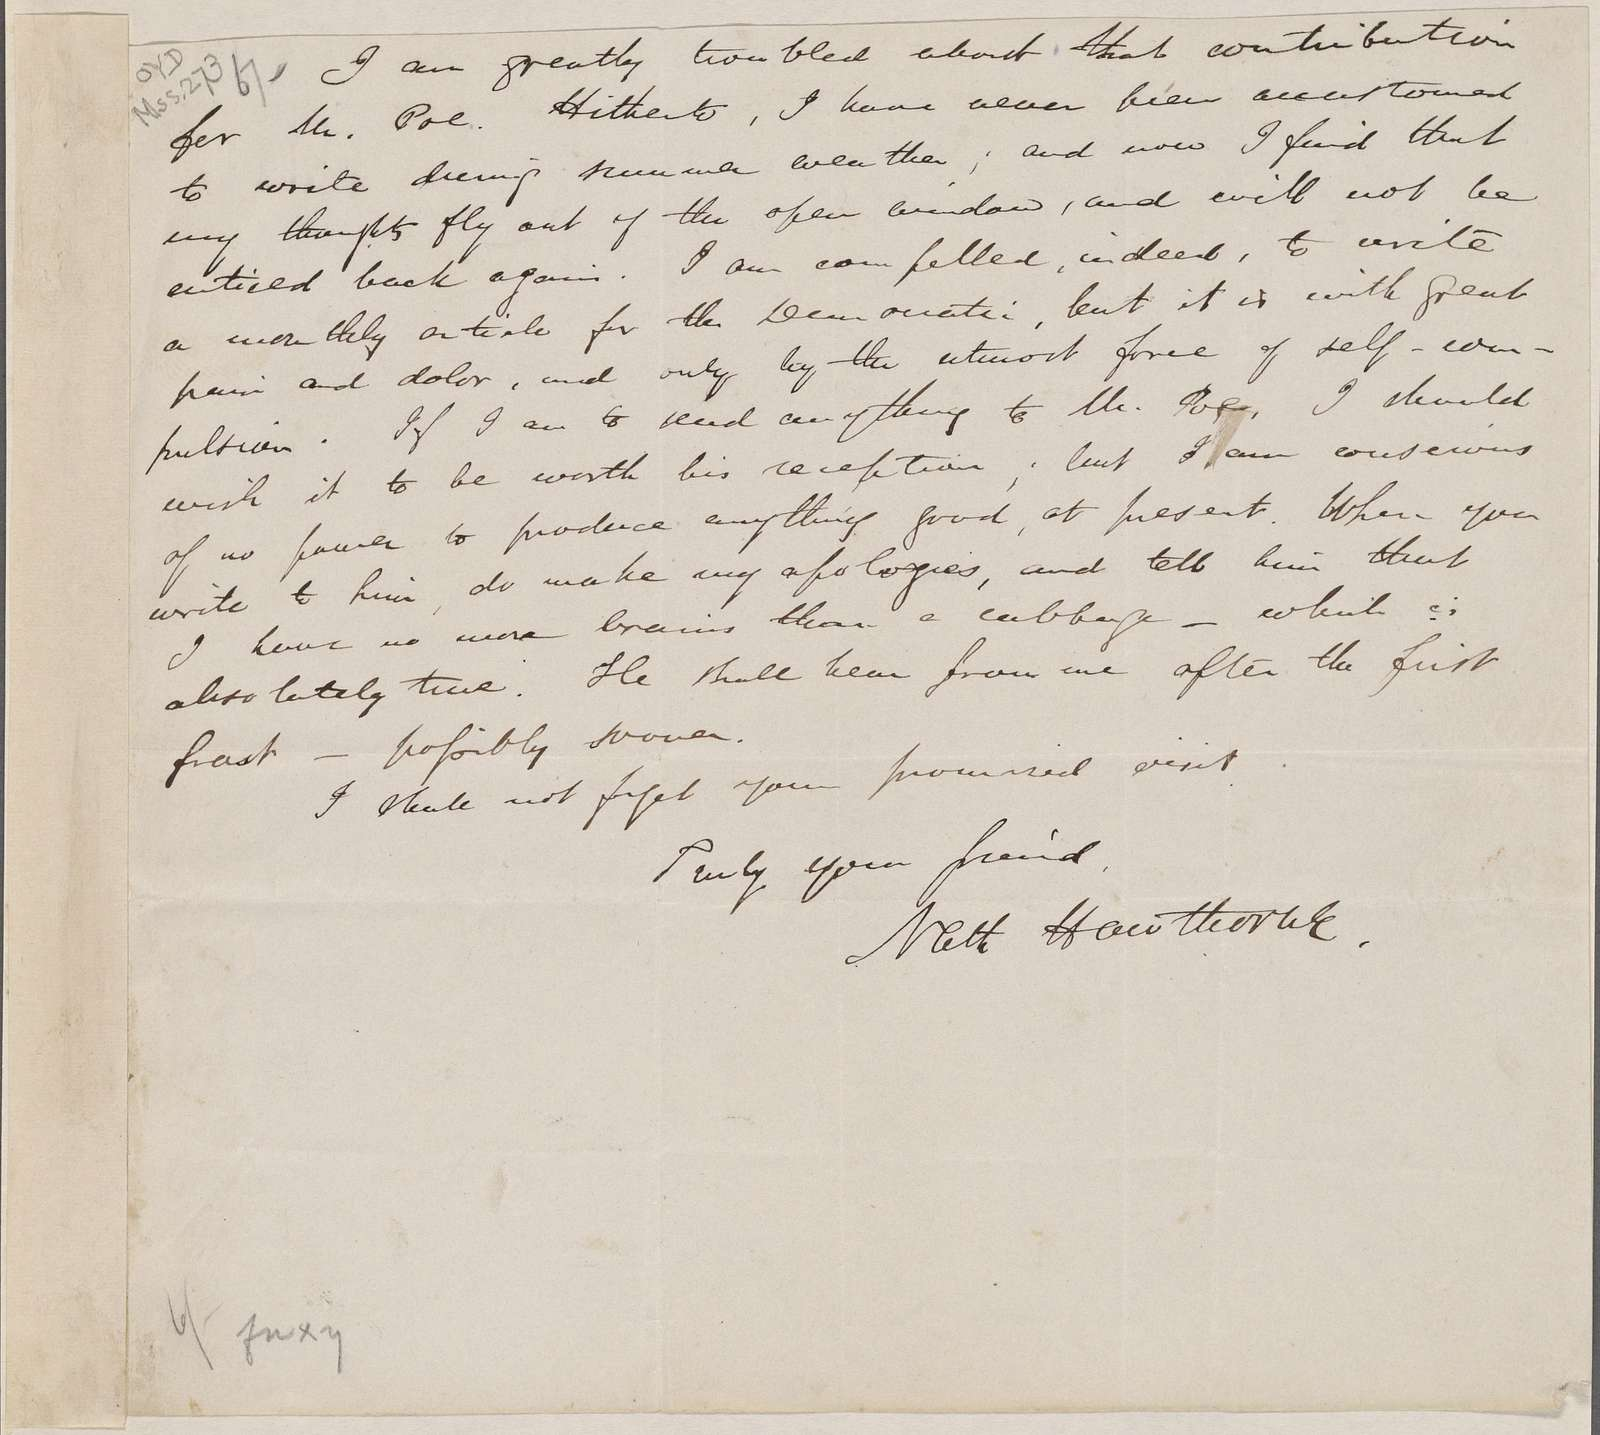 [Lowell, James Russell], ALS to. [May? 1843]. Mentions Edgar Allan Poe.